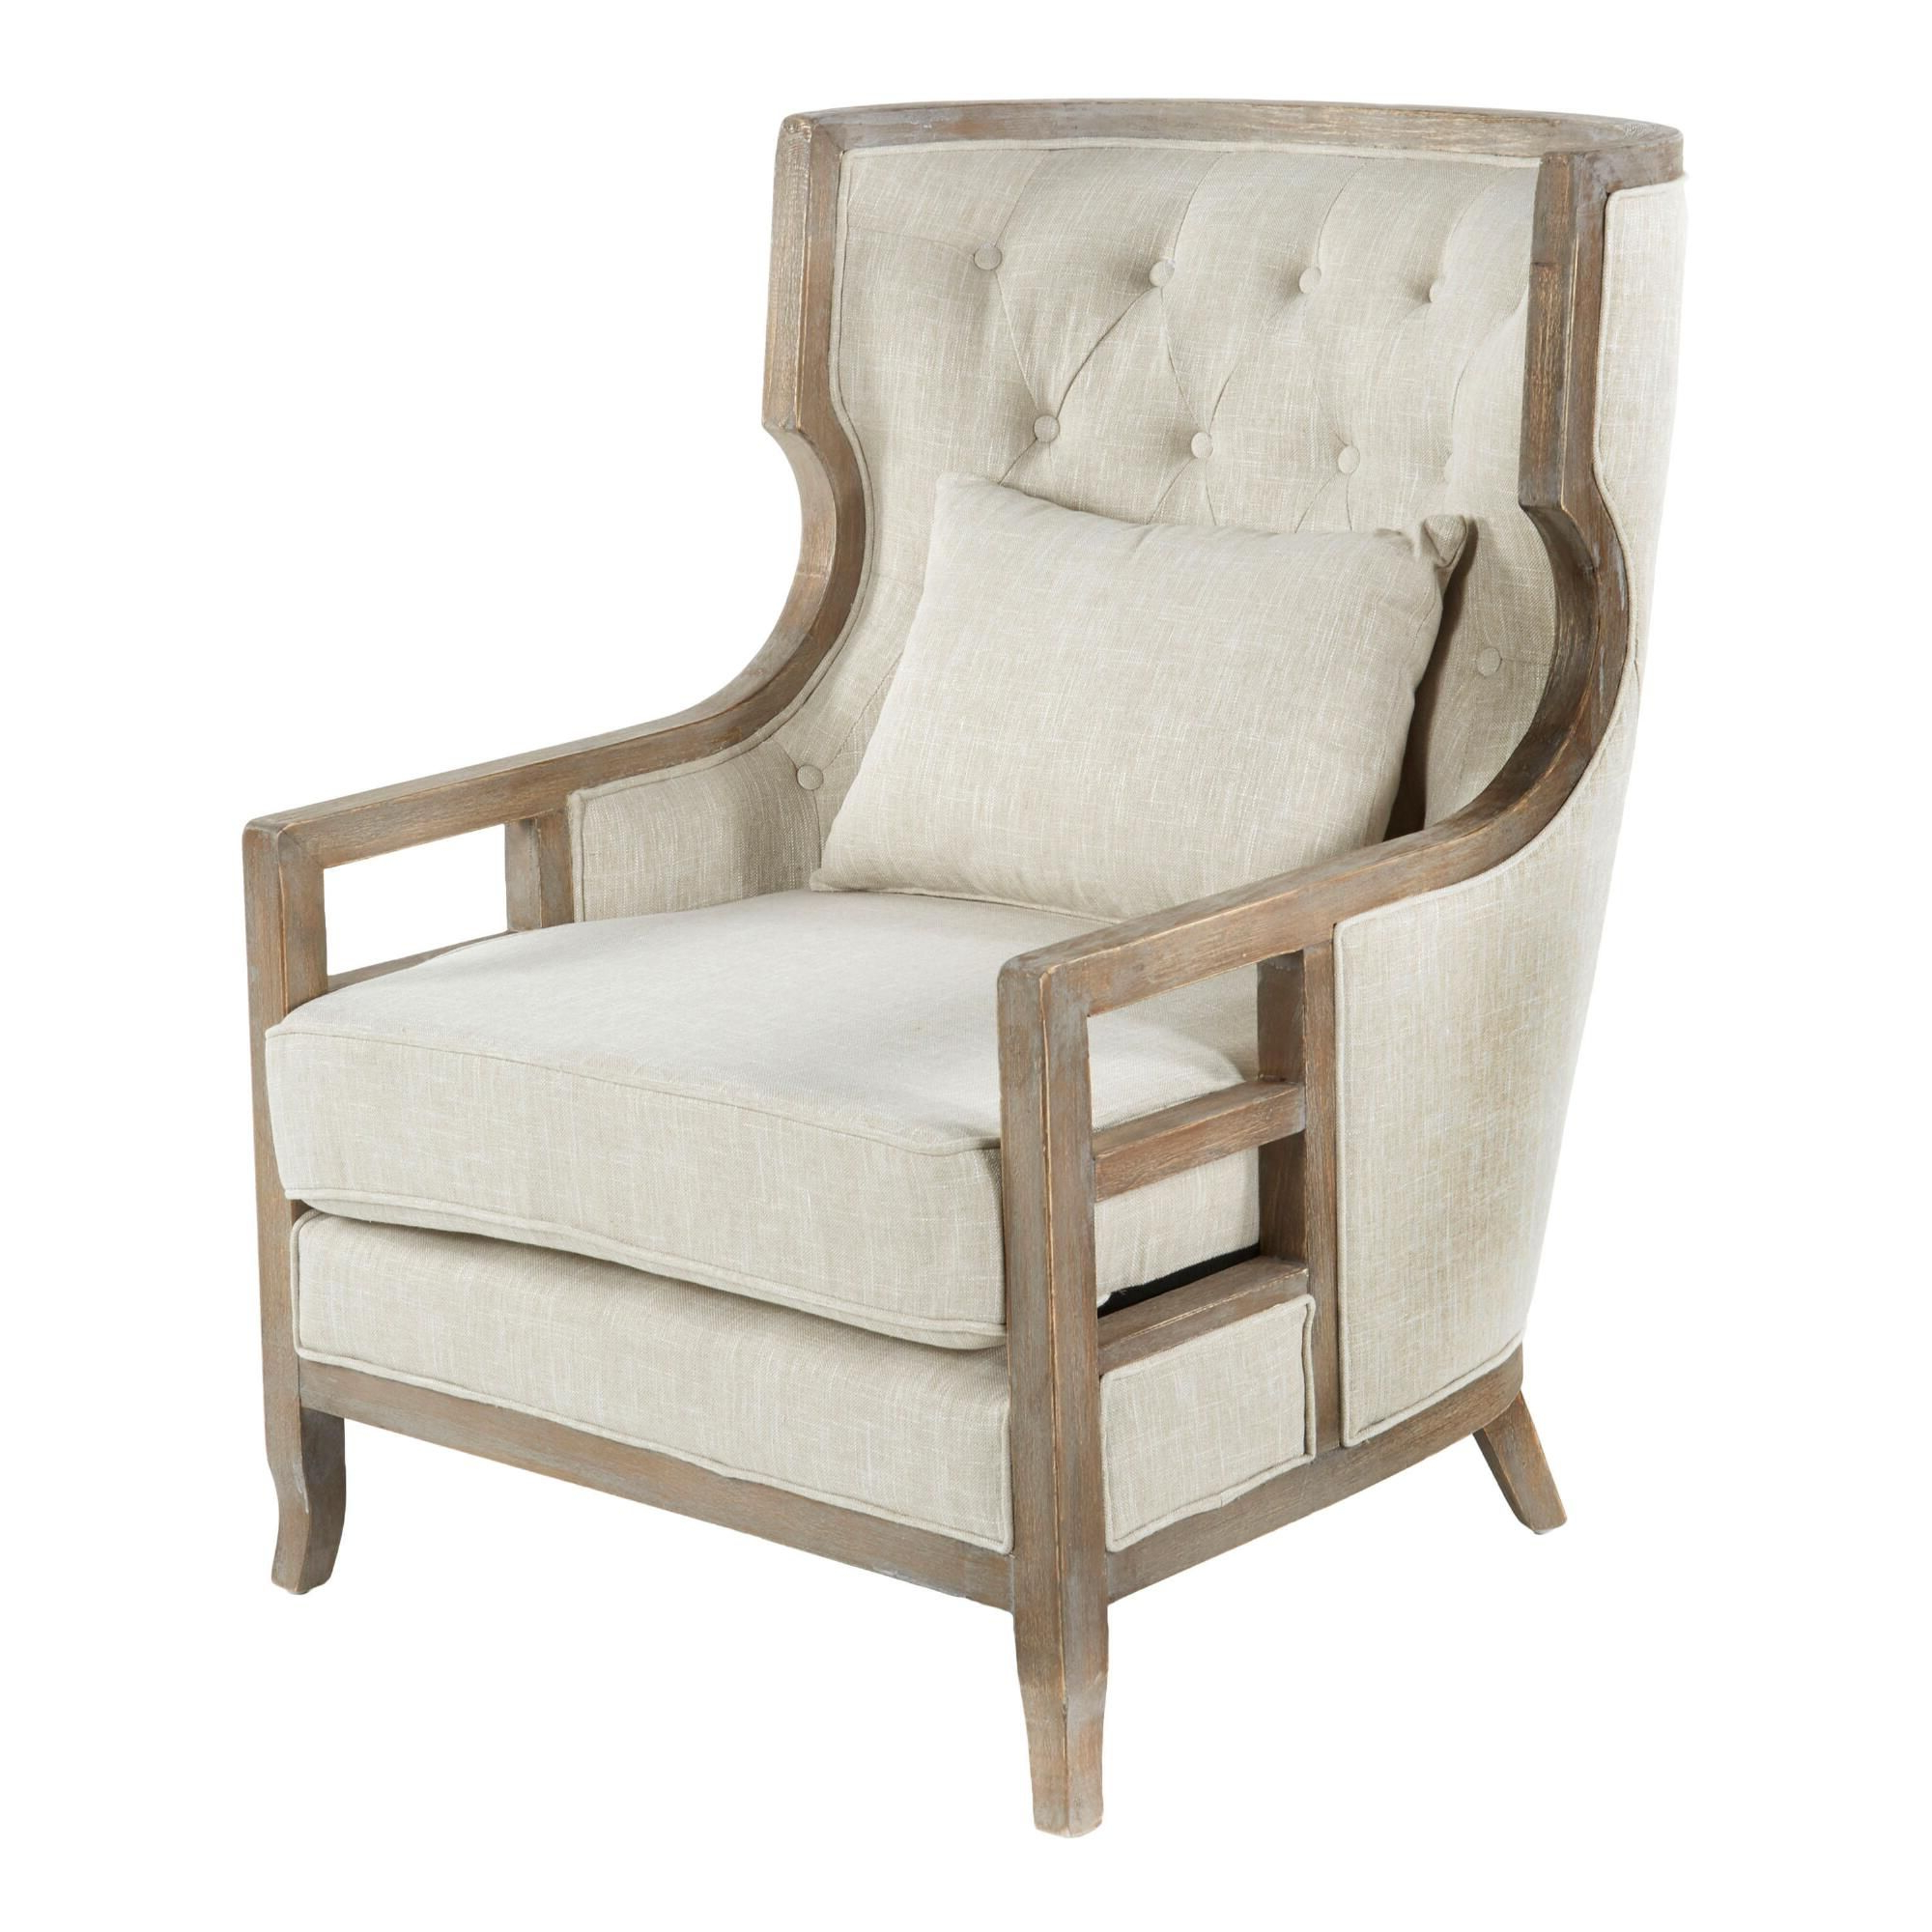 Myia Armchairs Regarding Widely Used Beige Tufted Linen And Wood Willa Upholstered Armchair (View 17 of 20)